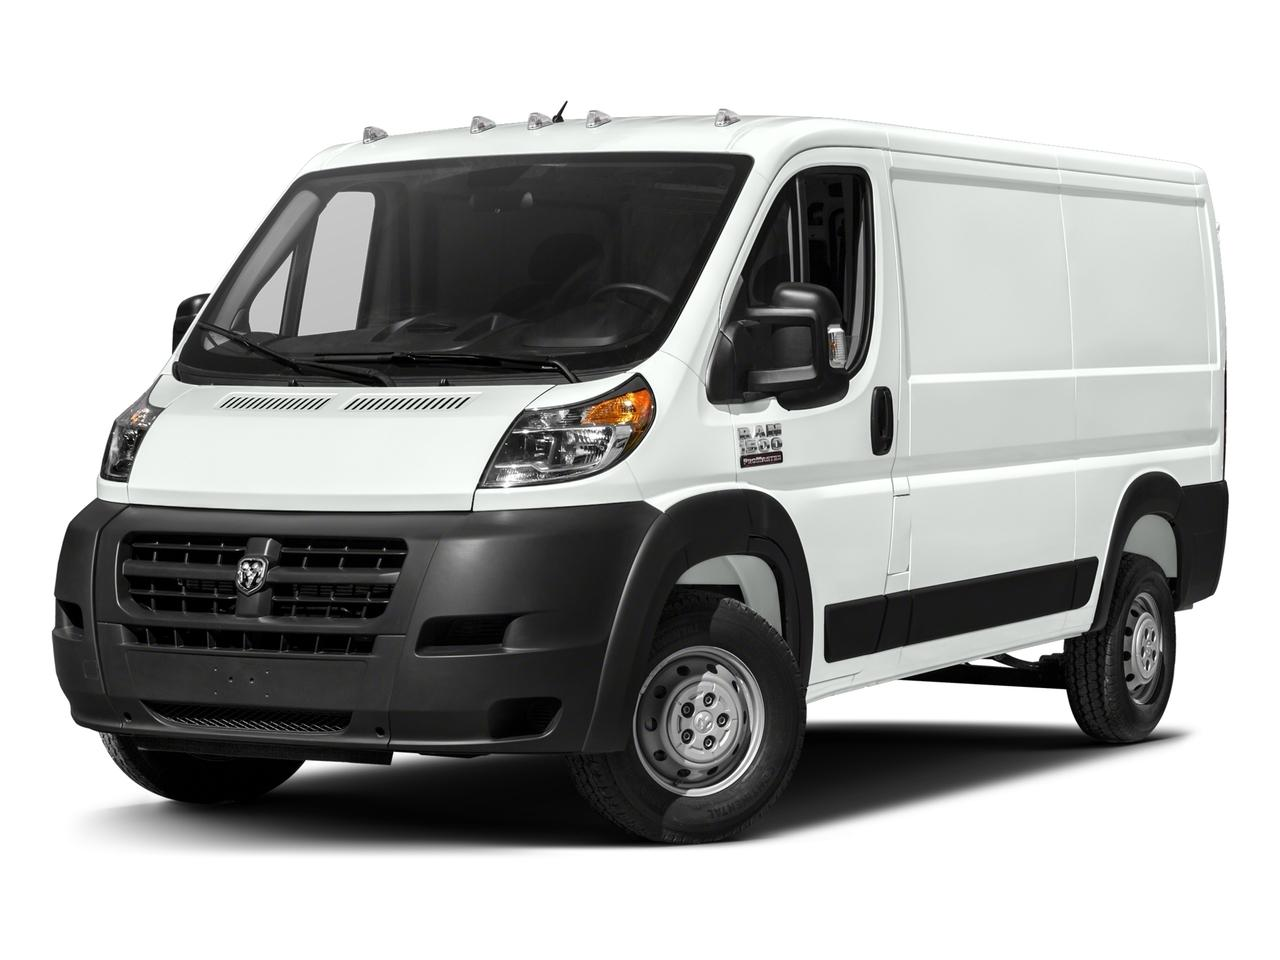 2018 Ram ProMaster Cargo Van Vehicle Photo in Ellwood City, PA 16117